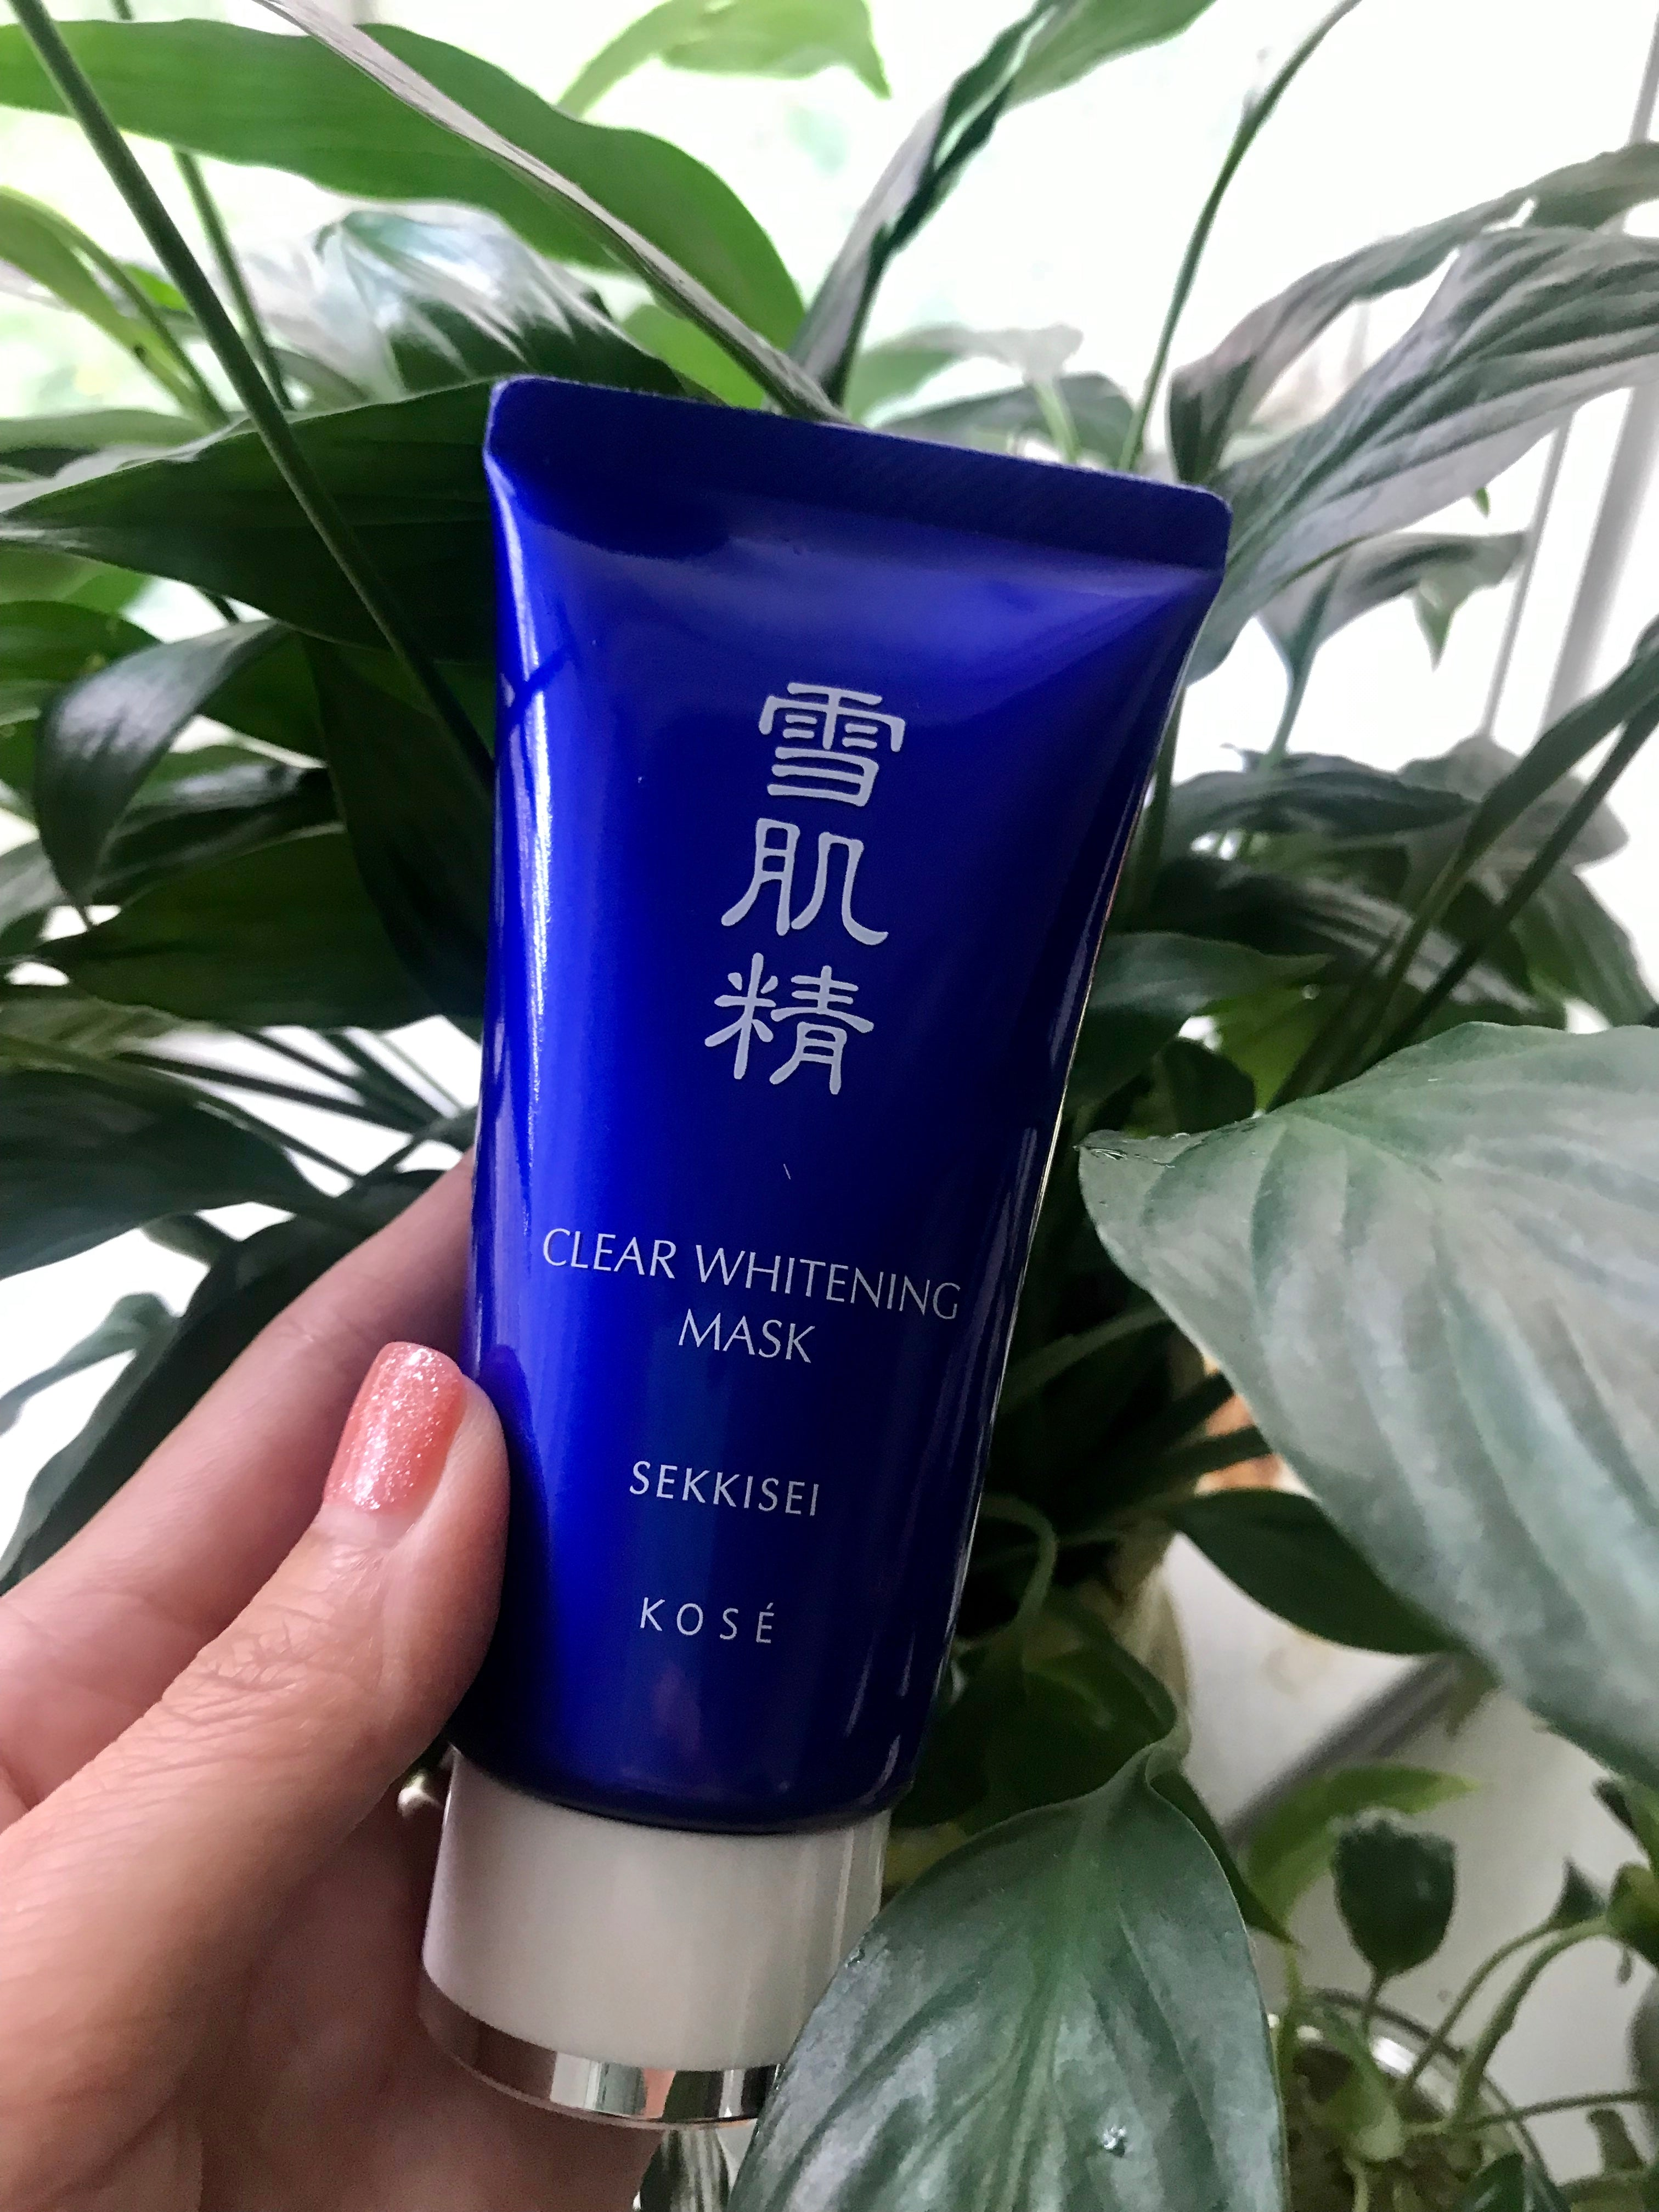 Kose Sekkisei Clear Whitening Mask. Remove blackheads, dead skin cells and remove fine lines. Made in Japan. Shipped from USA.